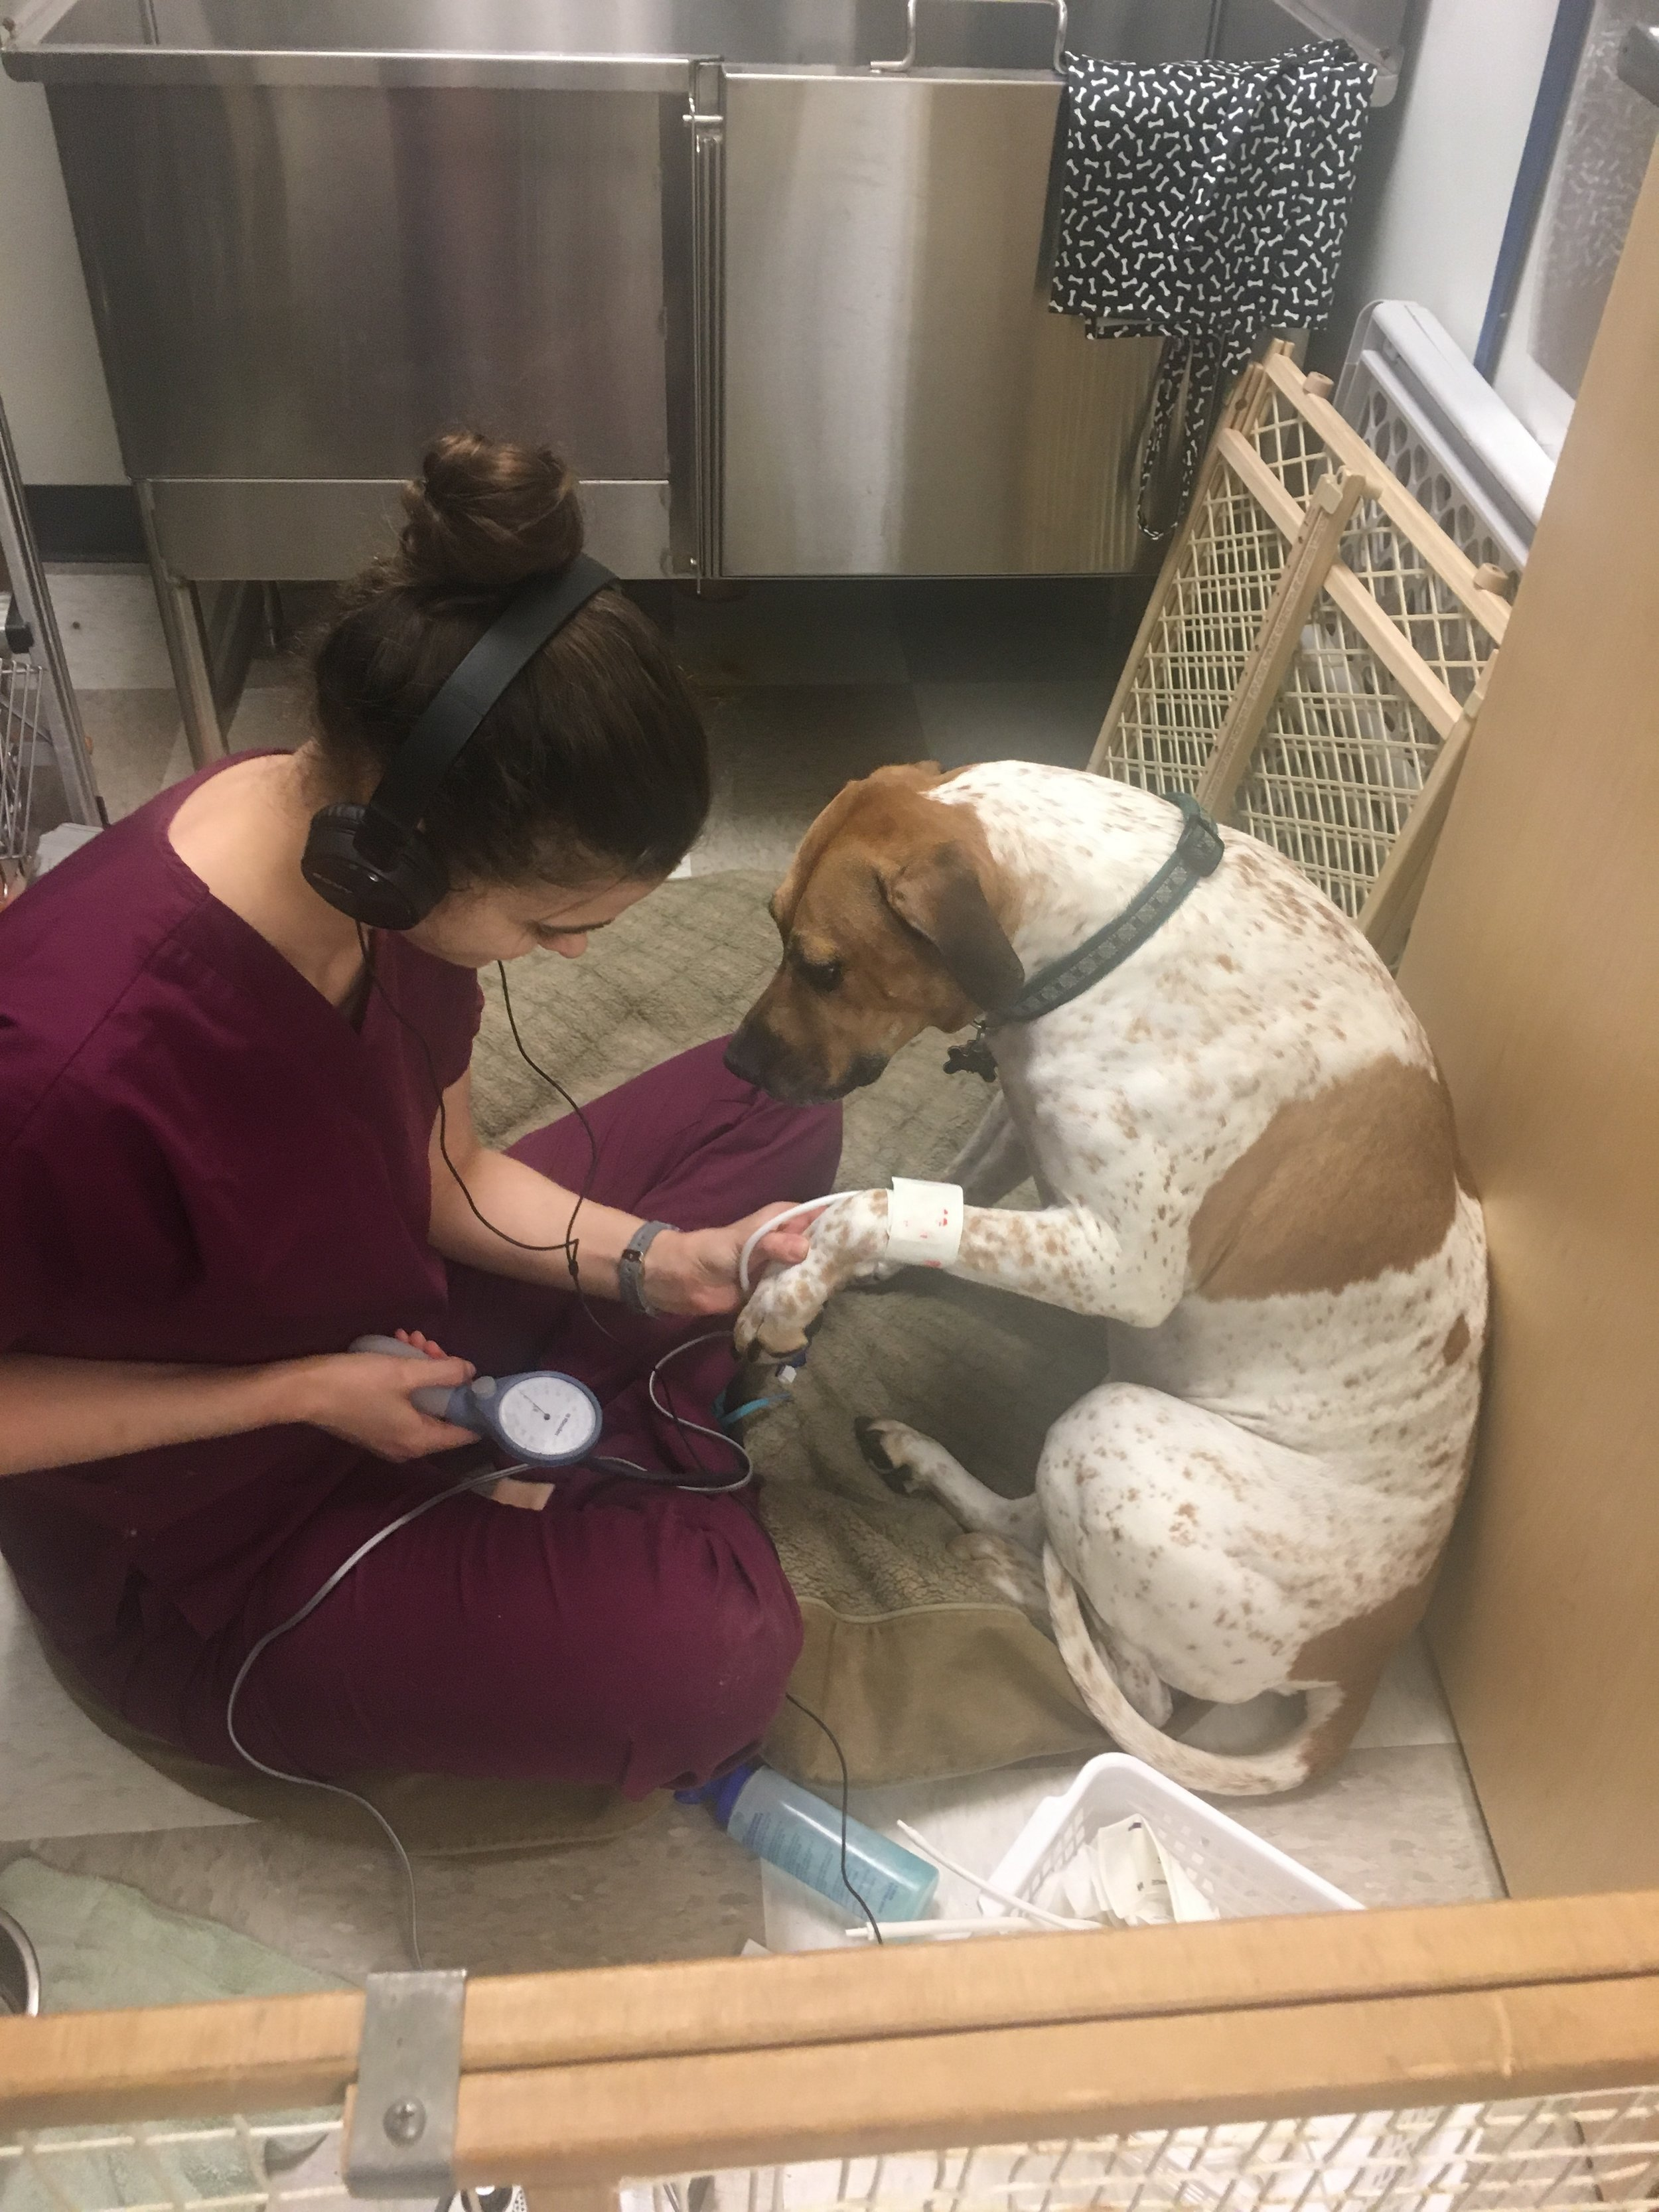 Clarendon Animal Care Veterinary Clinic Arlington Virginia assistant getting blood pressure on dog